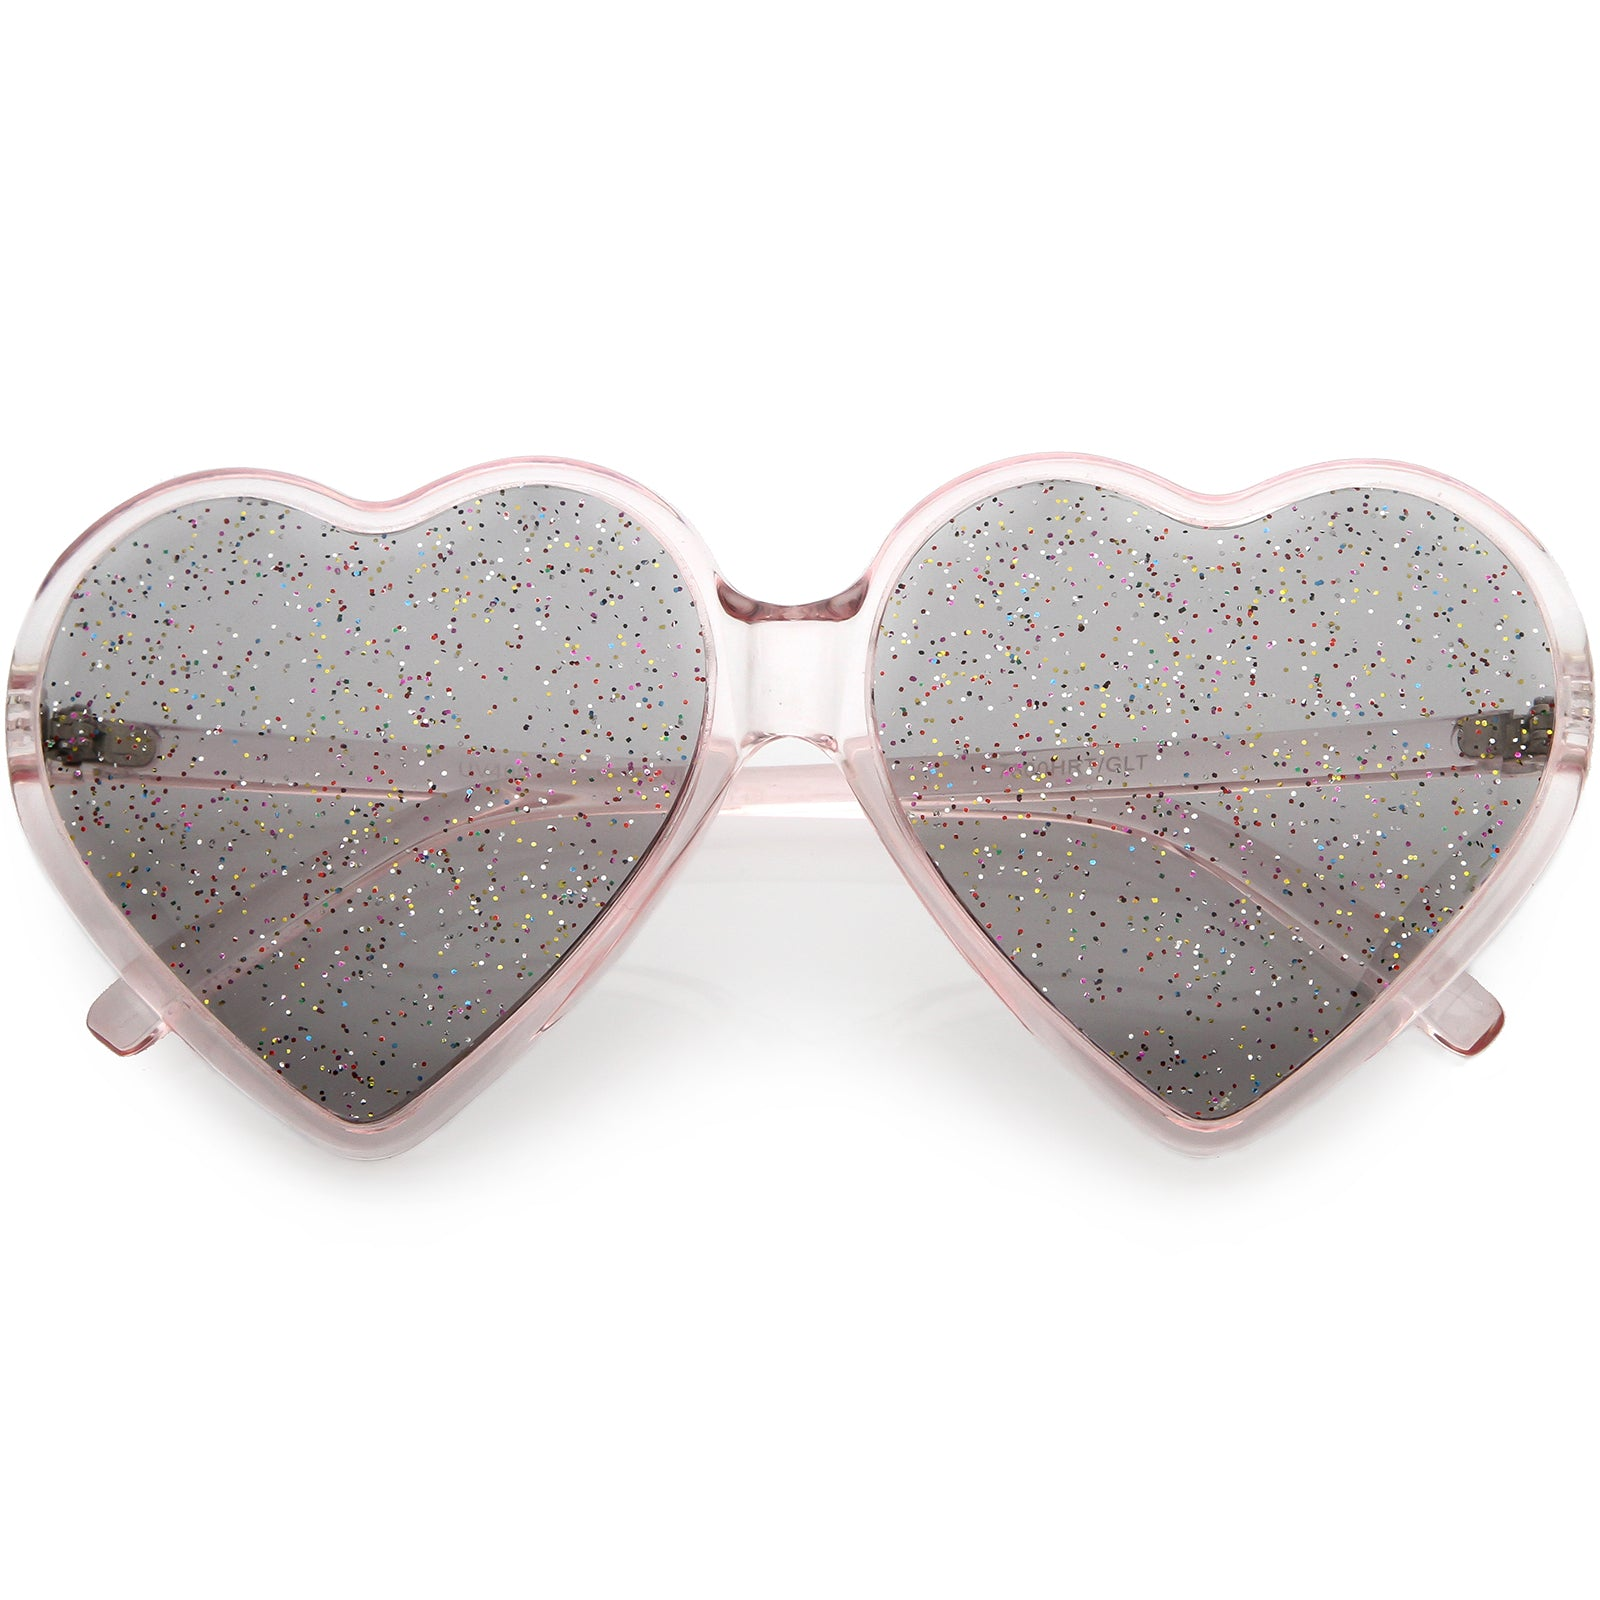 2dbbbdace65 Women s Novelty Oversize Heart Sunglasses Smoke Glitter Lens 62mm ...